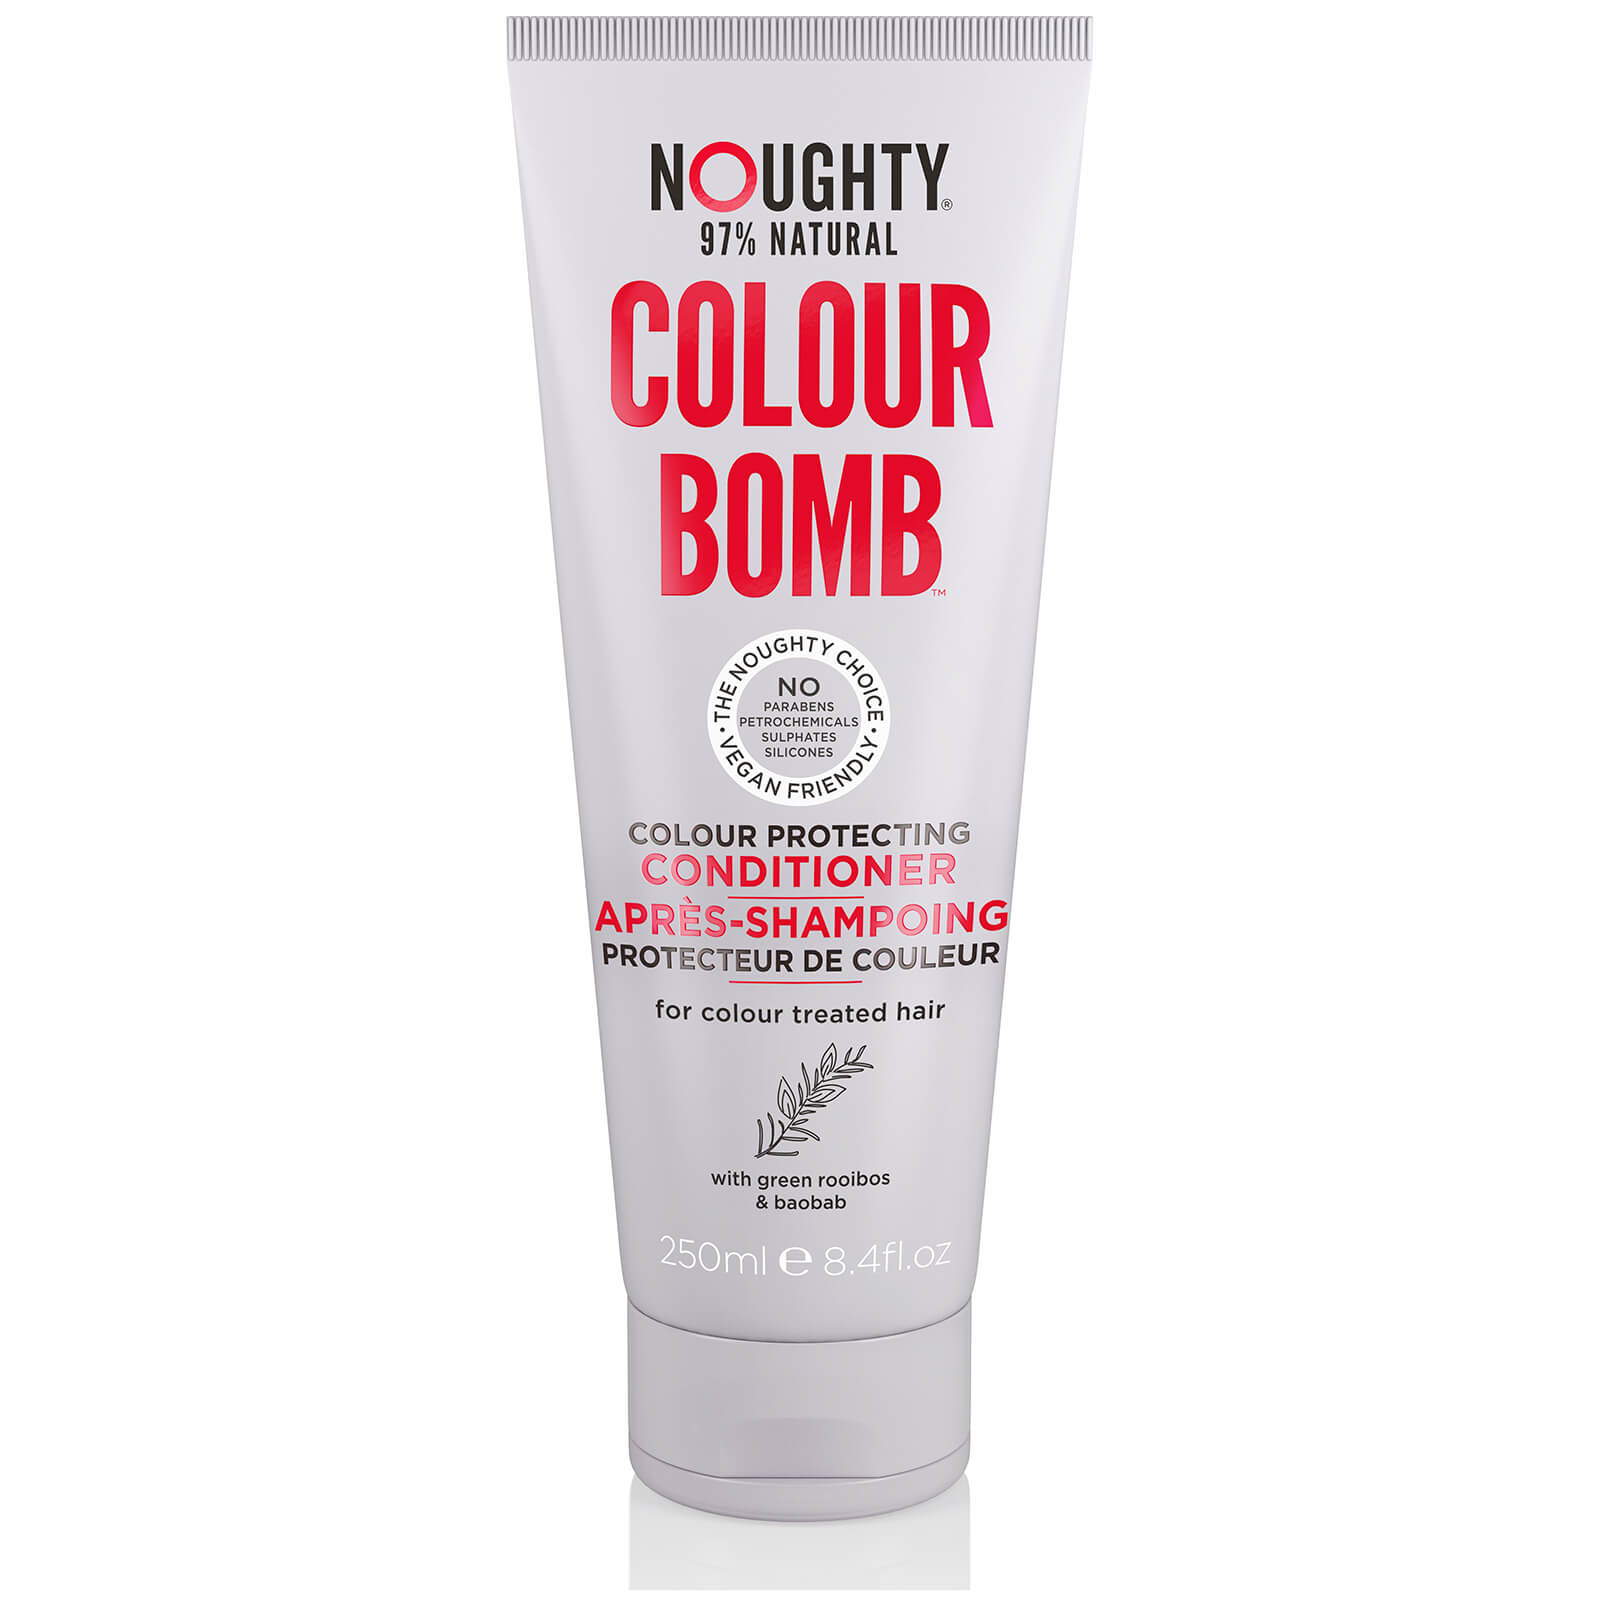 Noughty Colour Bomb Colour Protecting Conditioner 250ml | Buy Online